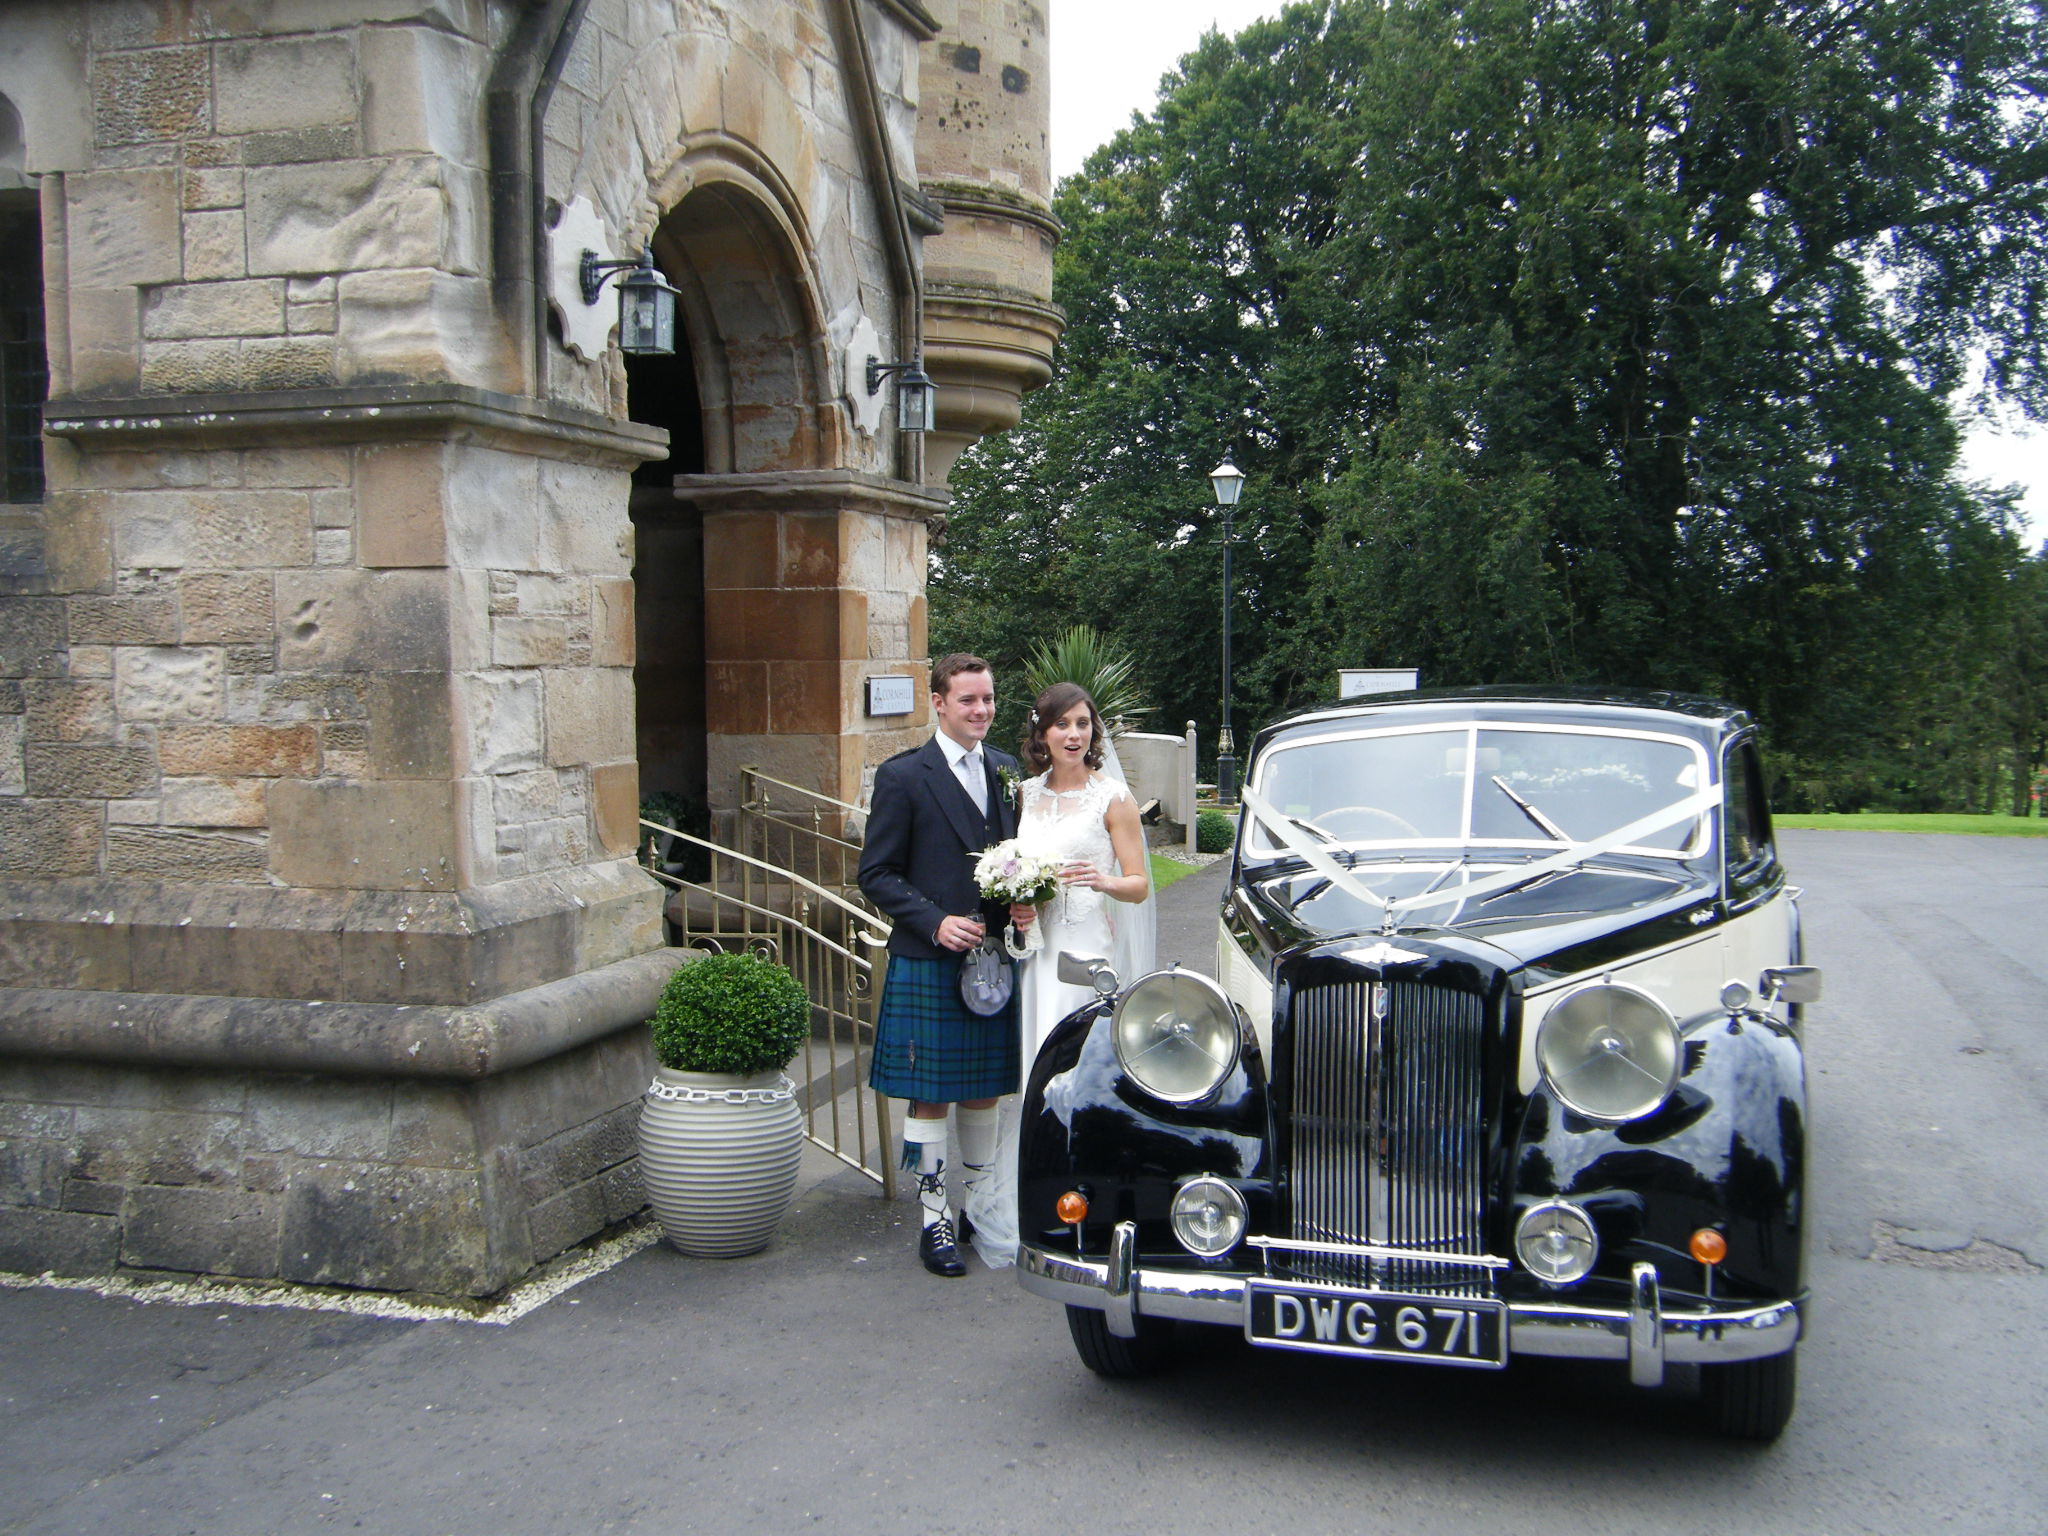 Congratulations To David And Natalie On Their Marriage Sunday 28th August 2016 At Biggar Parish Church Followed By The Reception Cornhill Castle